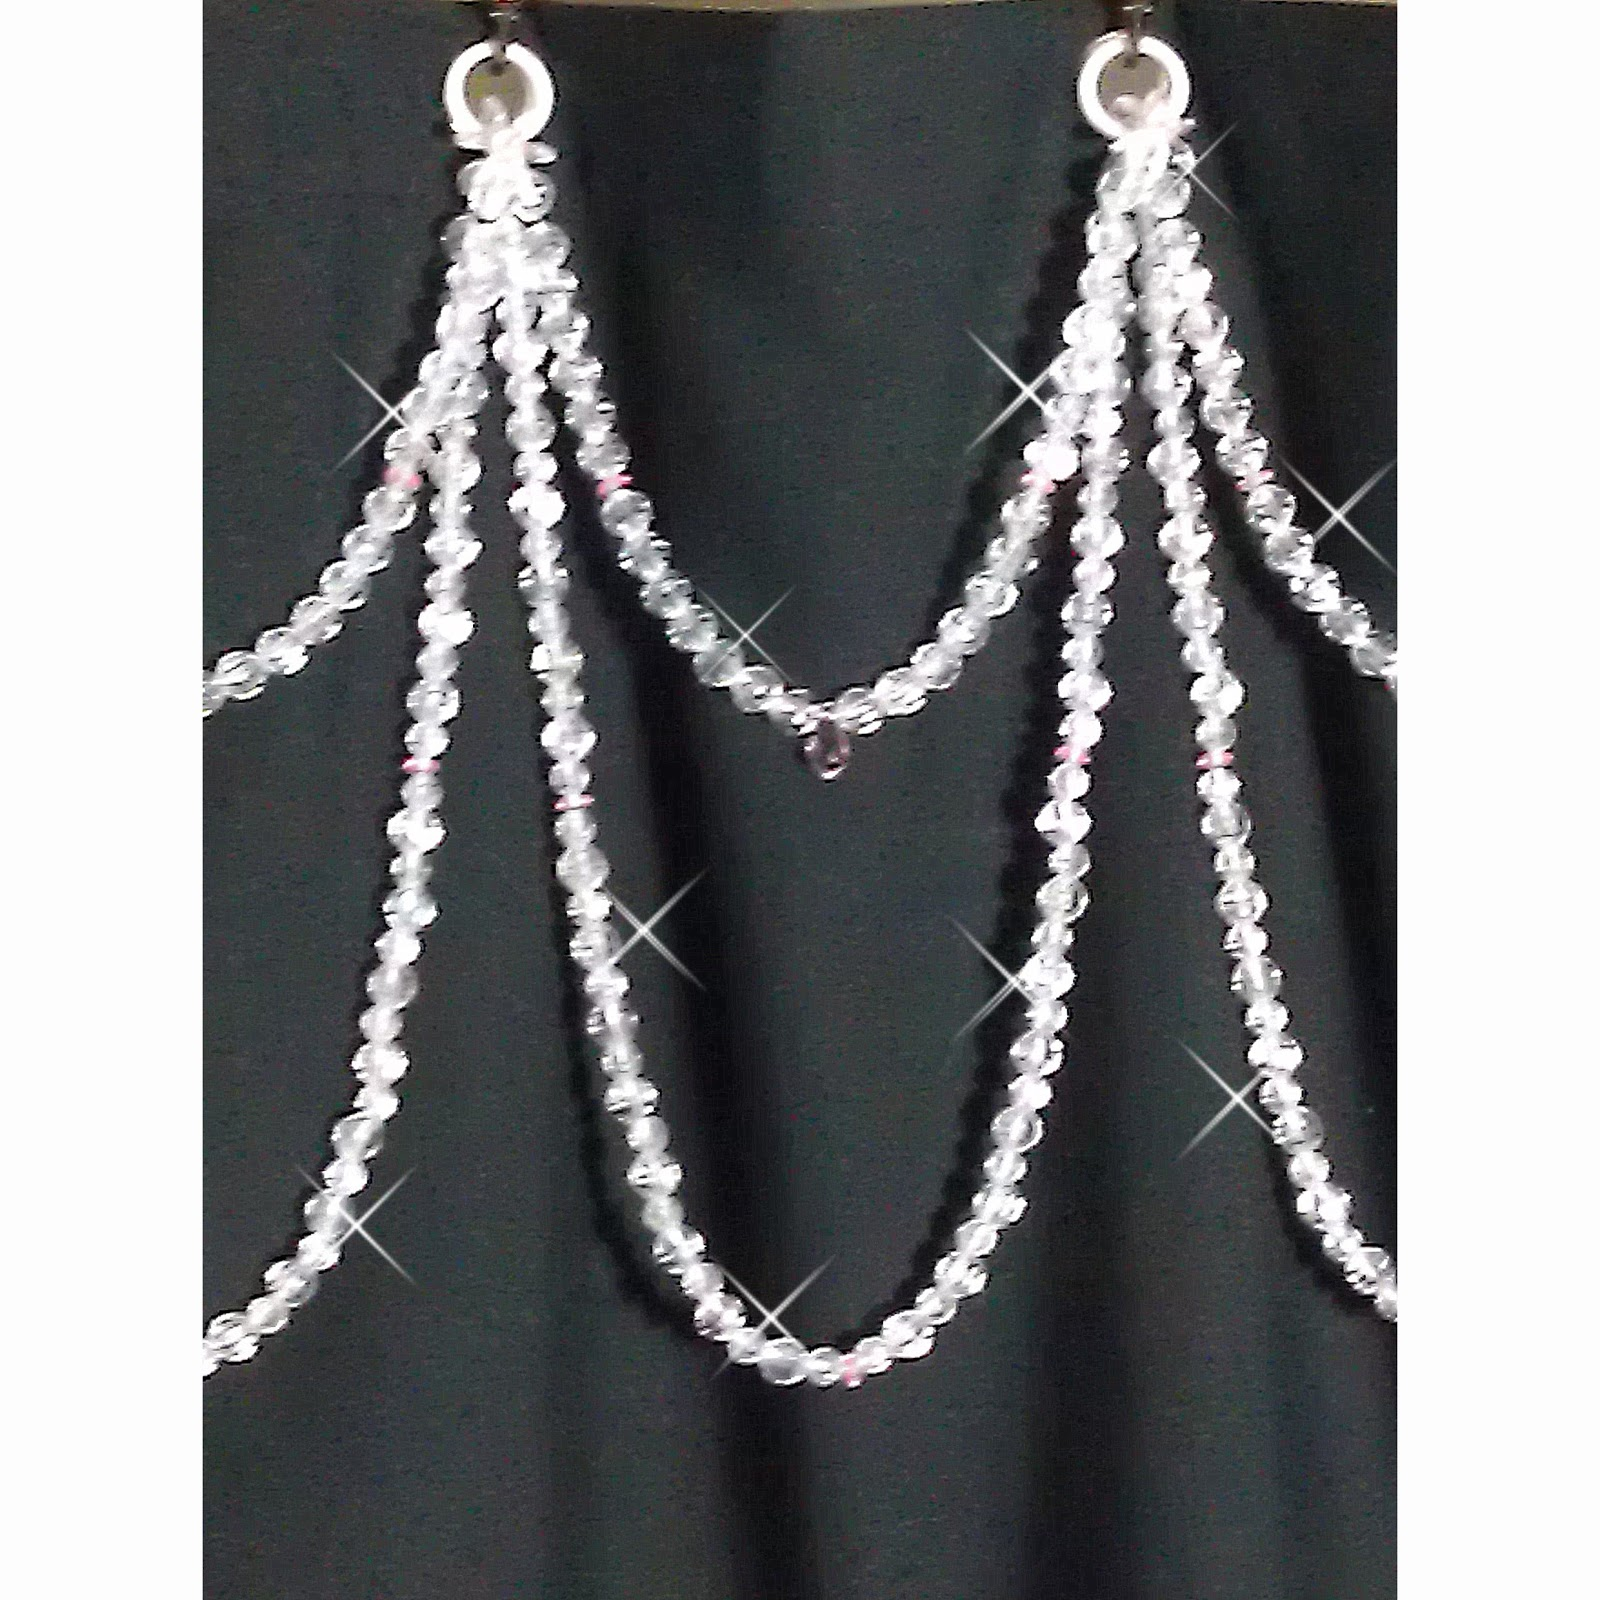 Black shower curtain hooks - Black And White Shower Curtain Hooks Rhinestone Shower Curtain Hooks Shower Curtain Bling Pink And